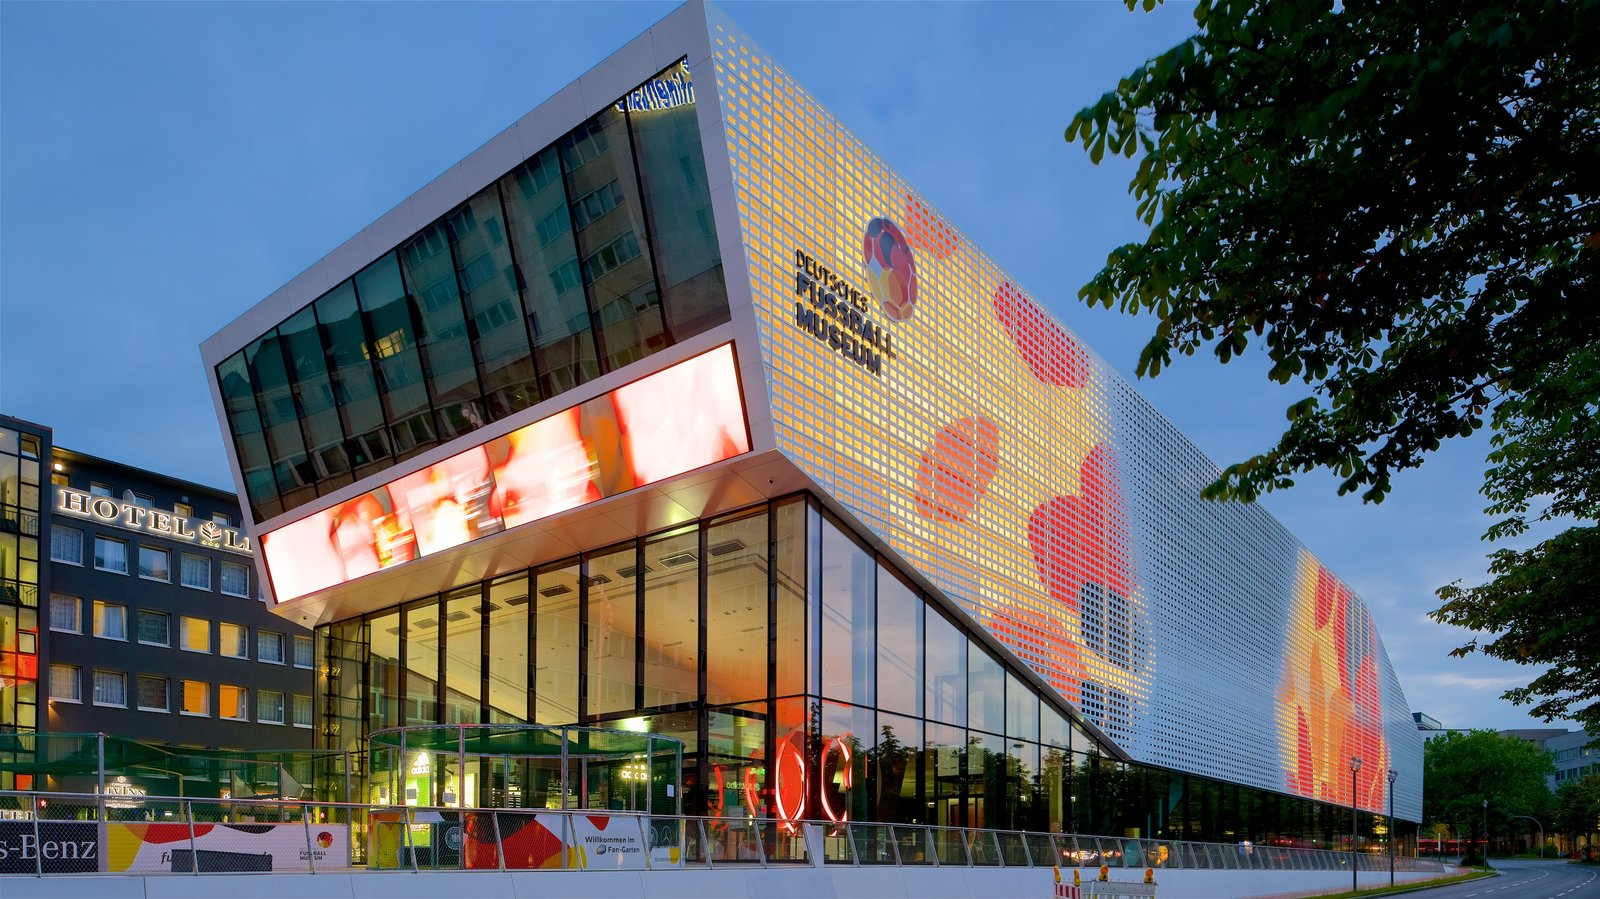 Modern Architecture Museum modern architecture pictures: view images of dortmund